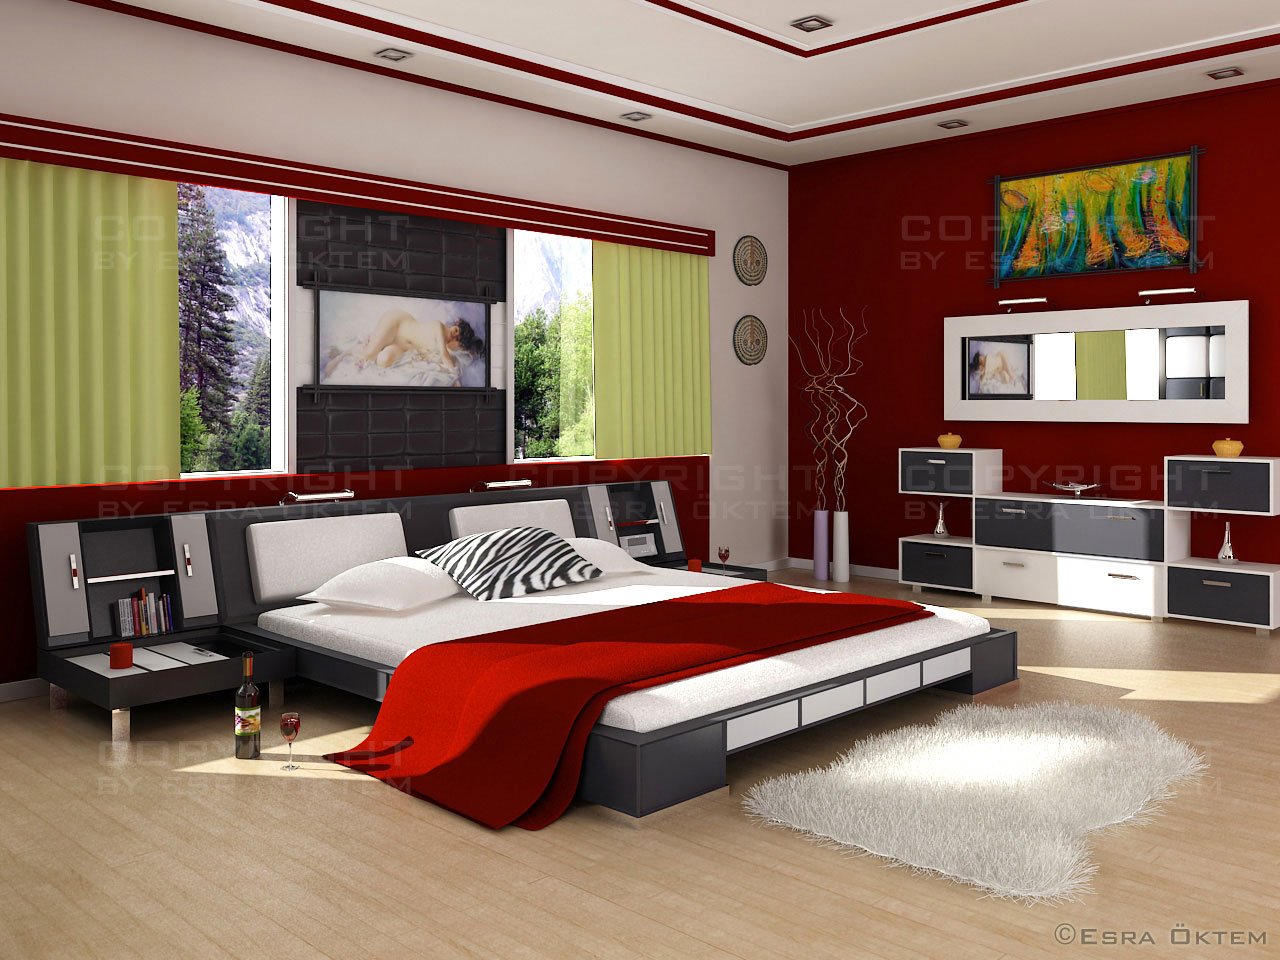 Bedroom Decorating Themes bedroom decorating themes - large and beautiful photos. photo to